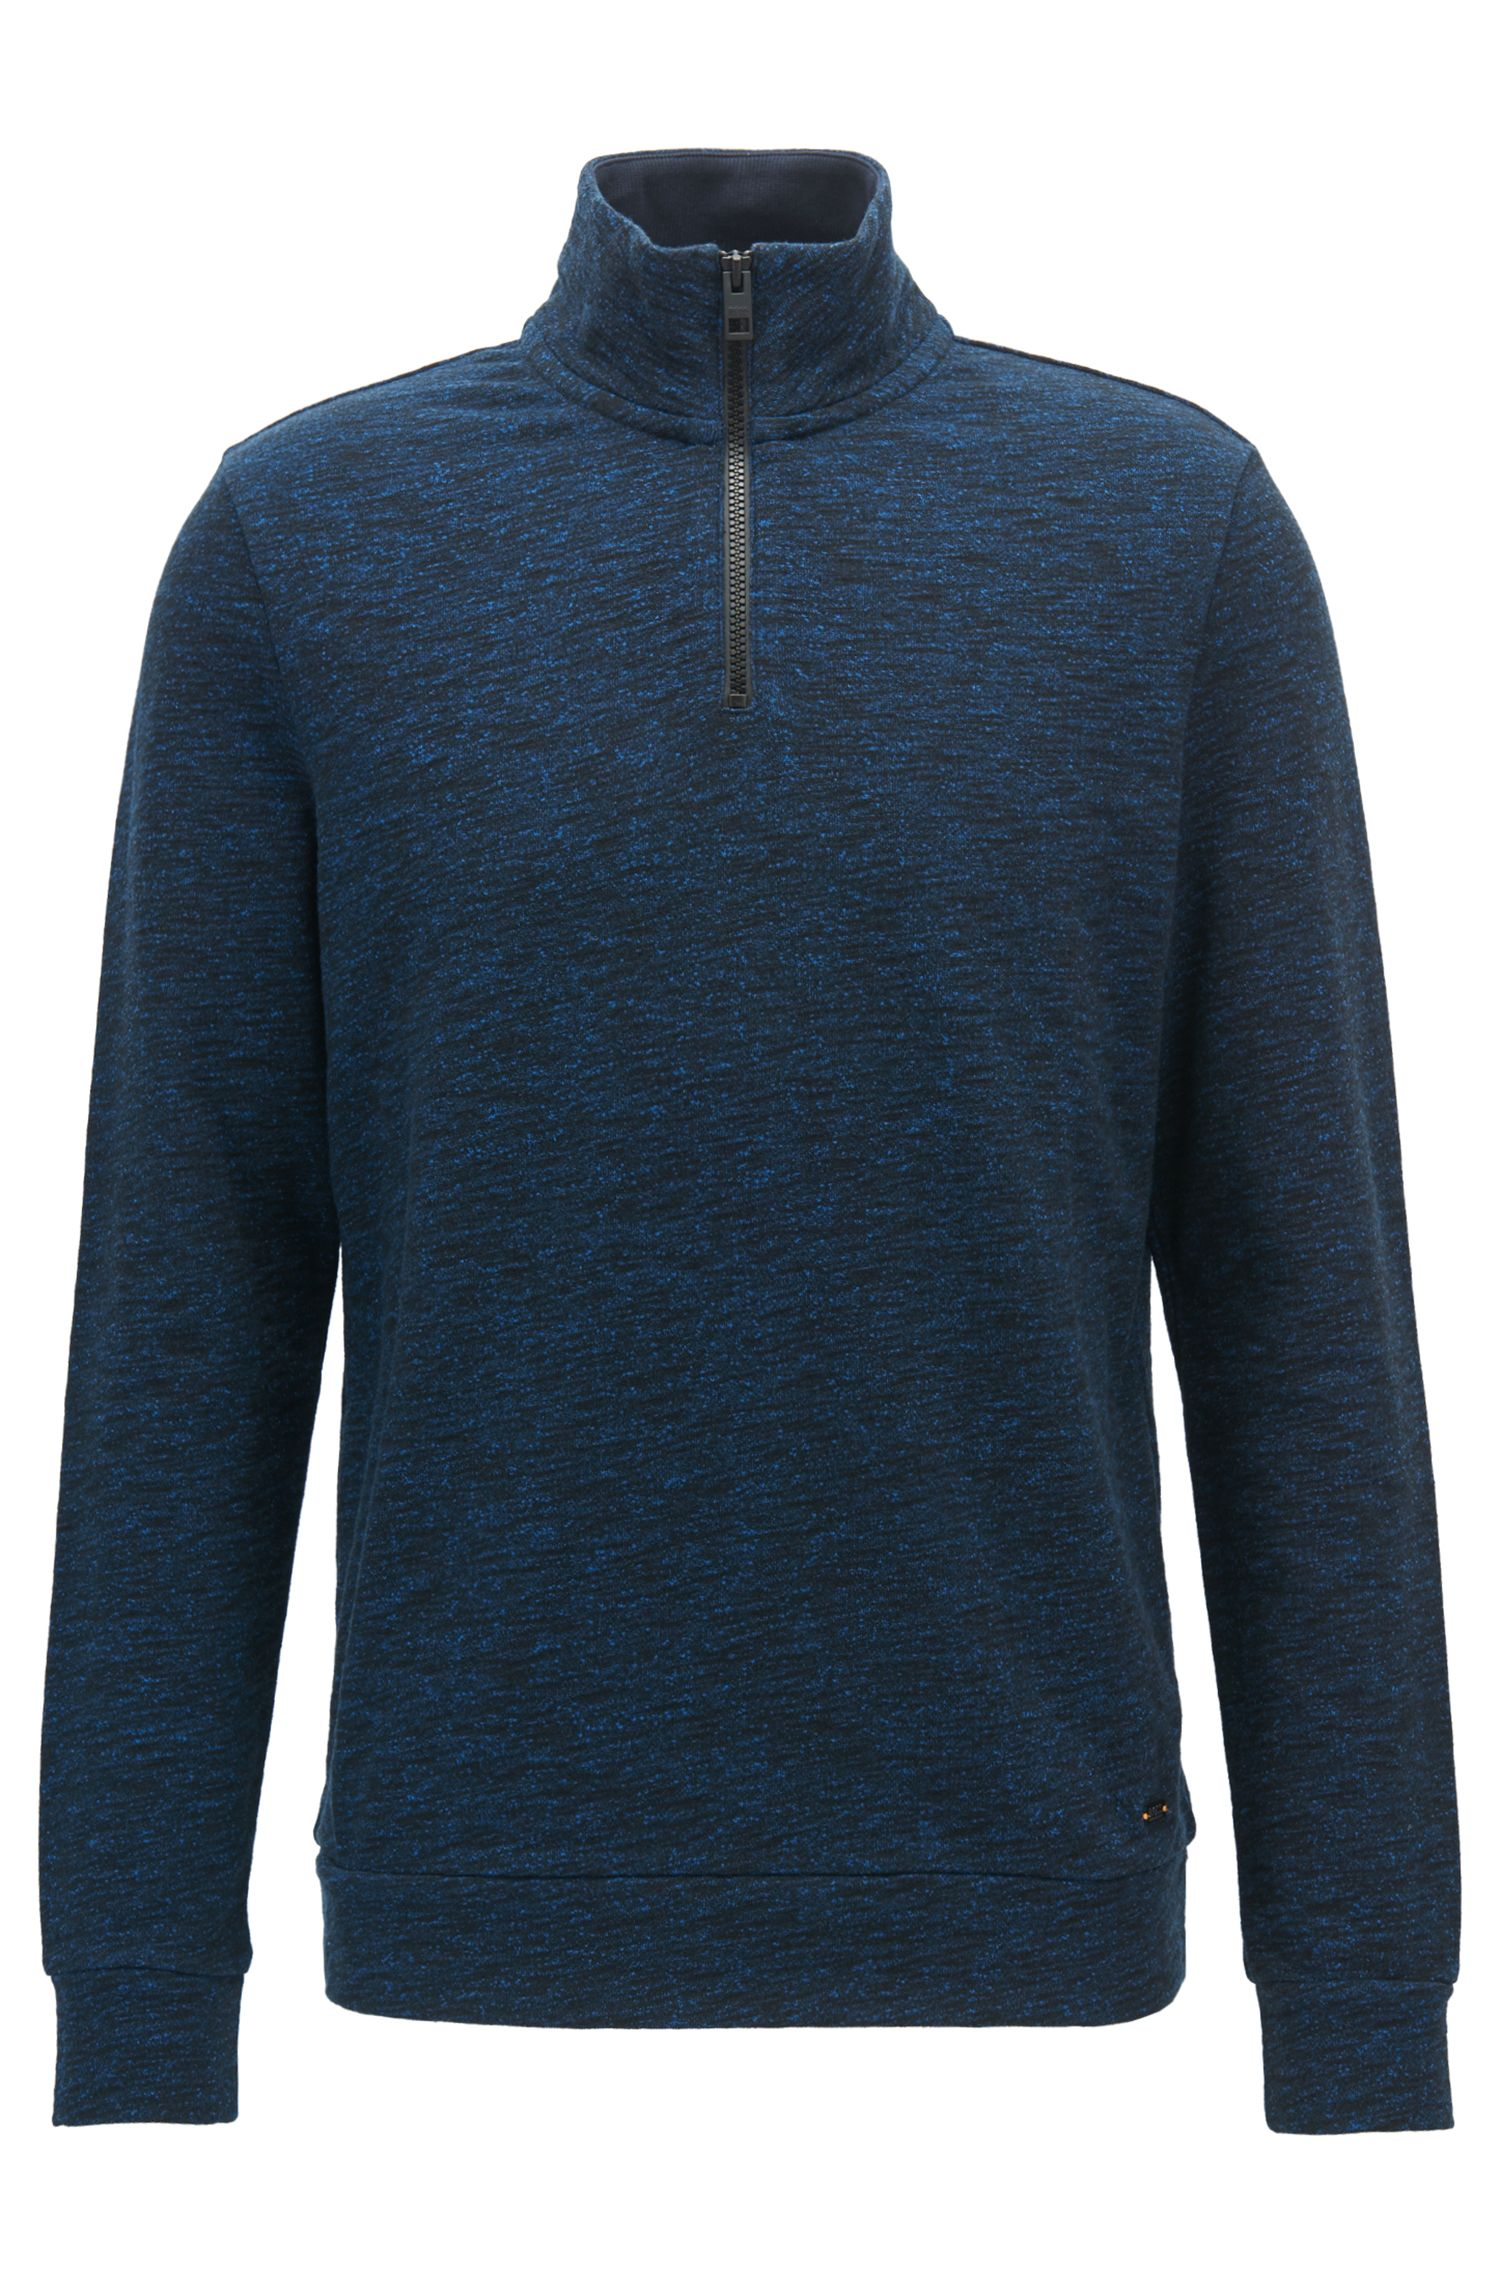 Half-Zip Sweater | Ztart-Up